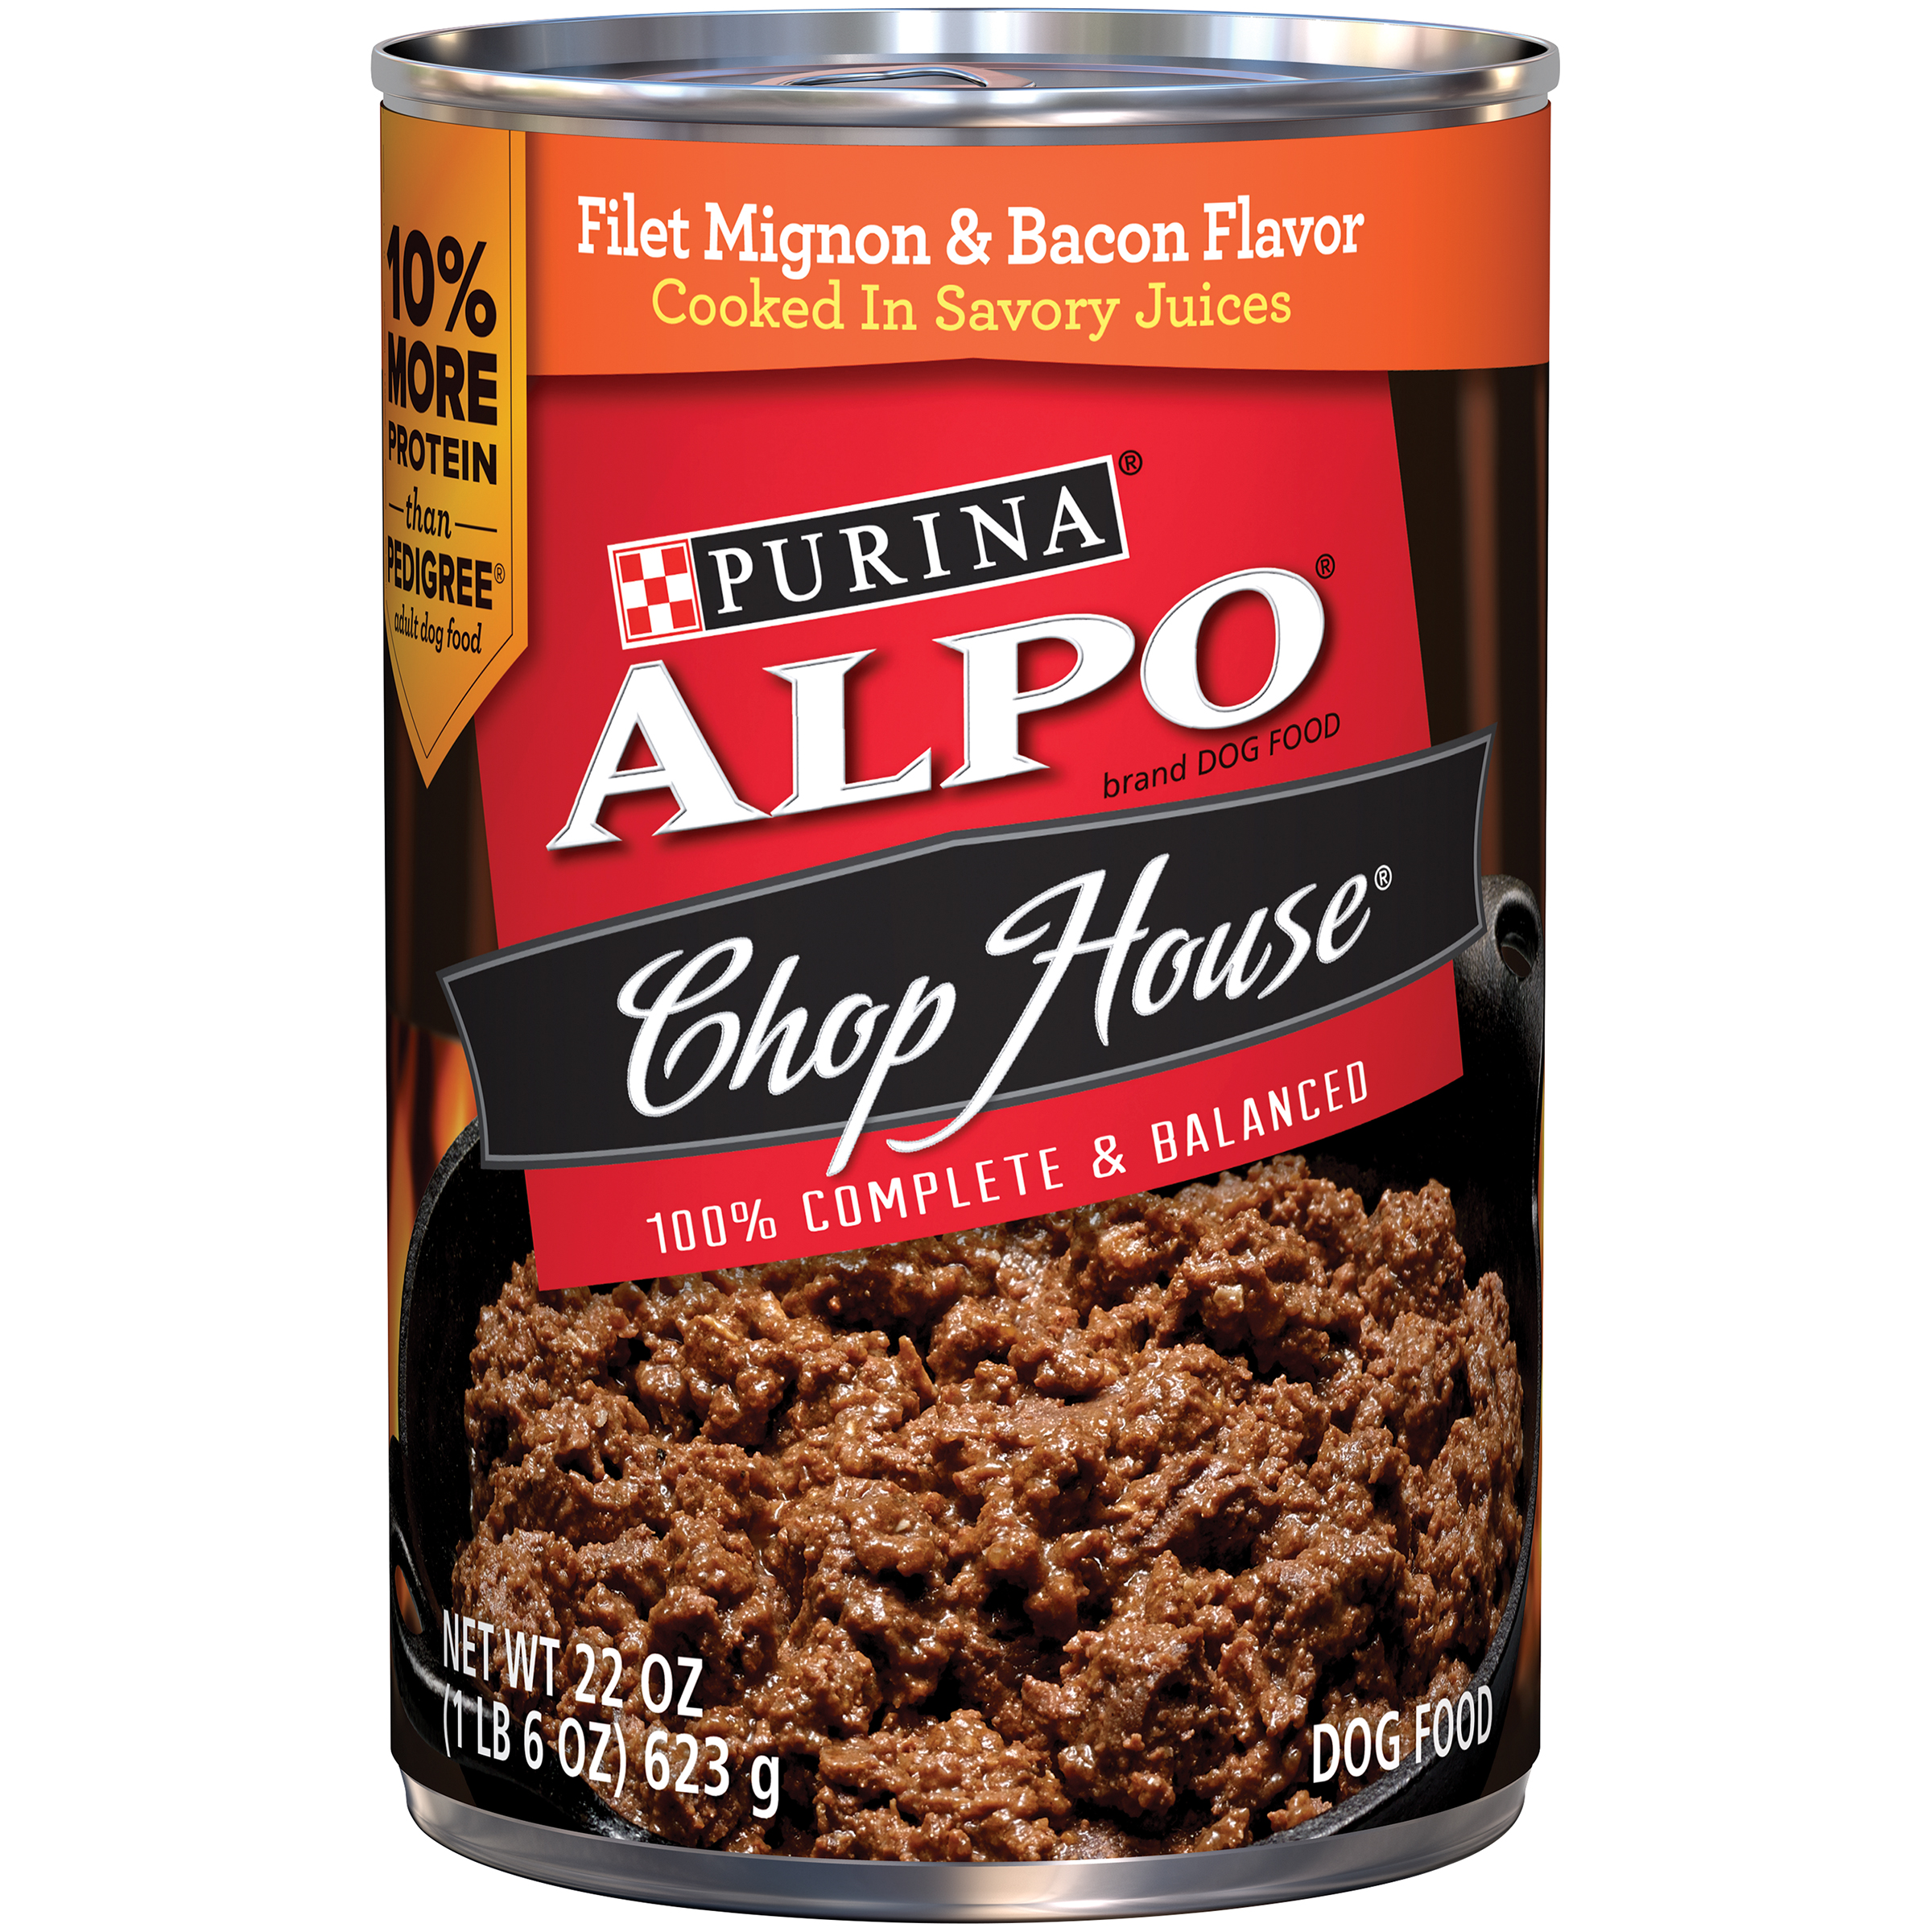 Purina ALPO Chop House Filet Mignon & Bacon Flavors Dog Food 22 oz. Can